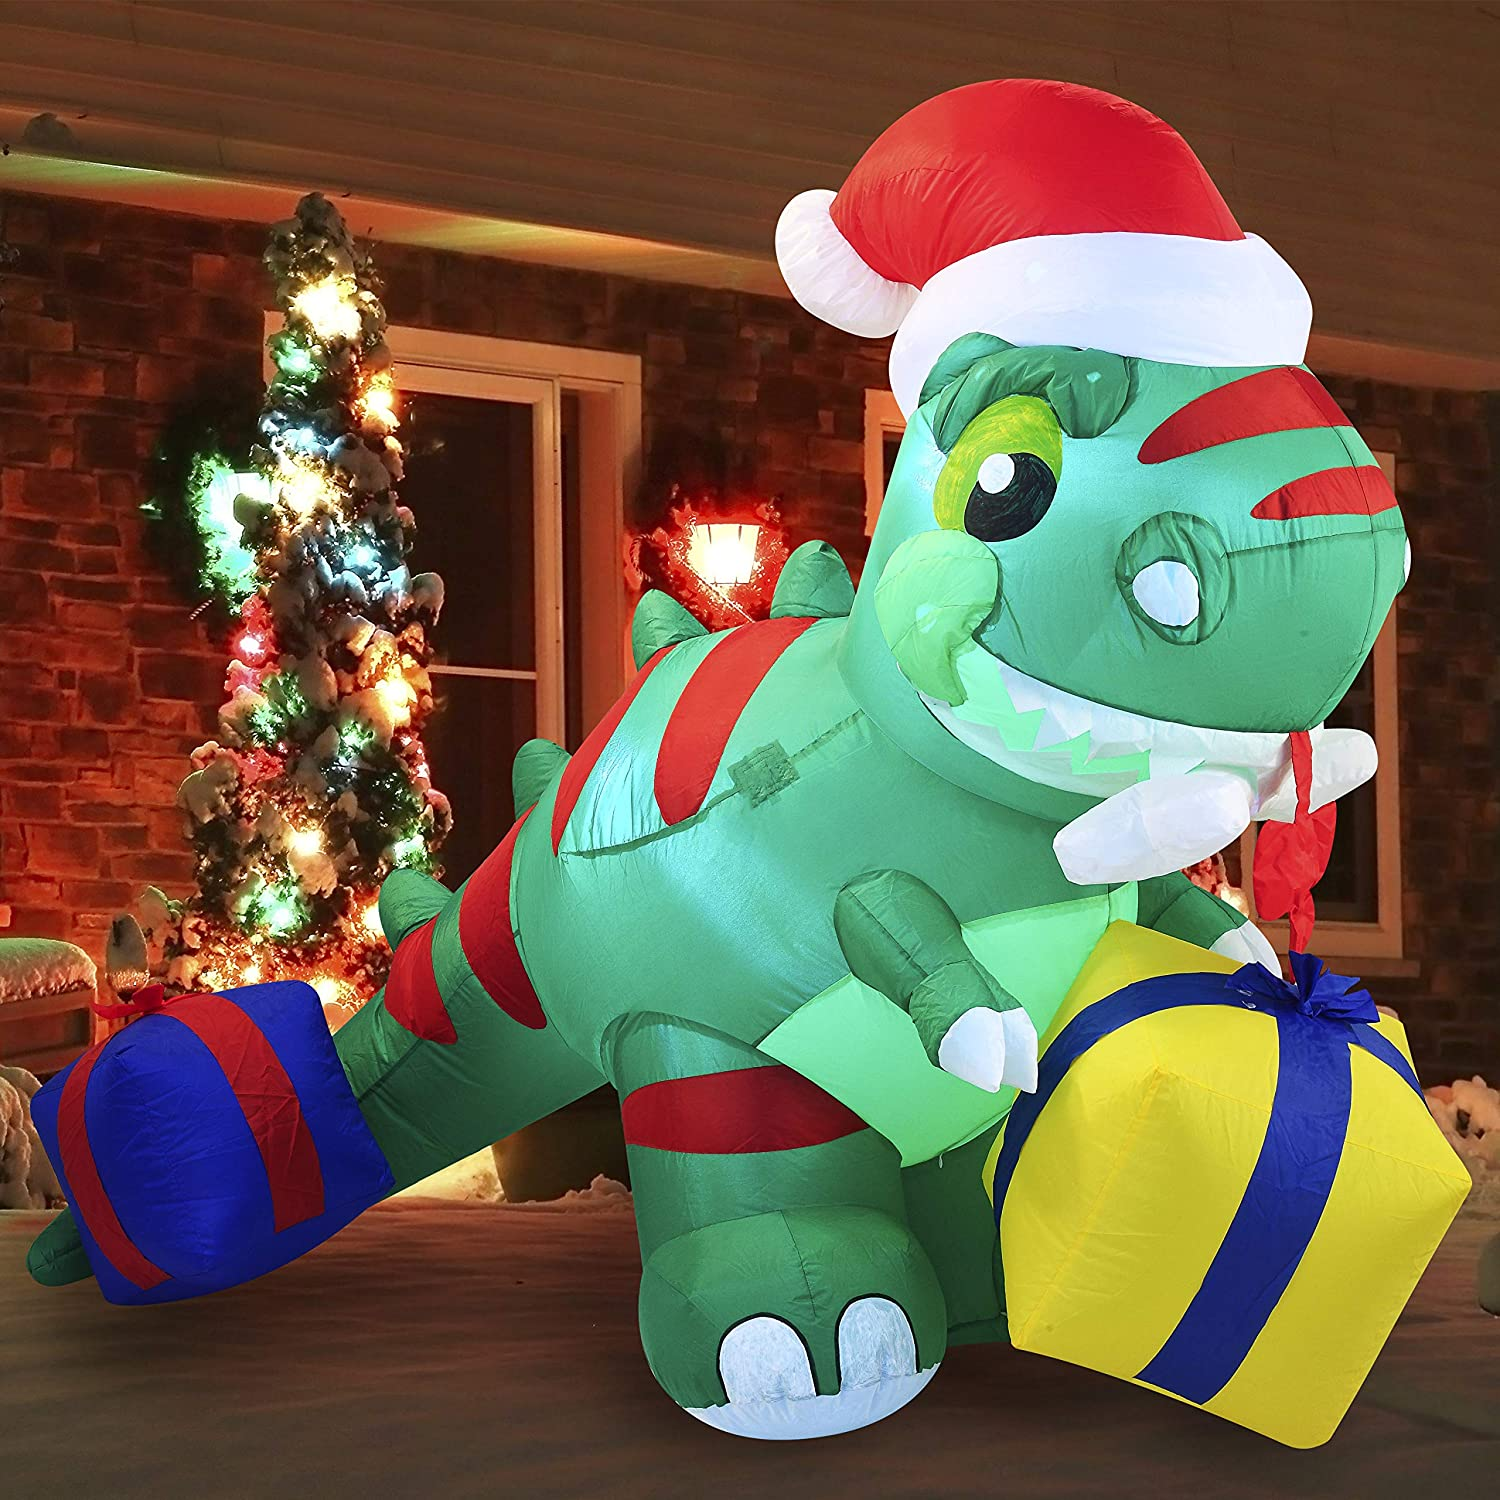 Joiedomi Christmas Inflatable Decoration 6ft Dinosaur Inflatable with Build-in LEDs Blow Up Inflatables for Xmas Party Indoor, Outdoor, Yard, Garden, Lawn, Winter Decor